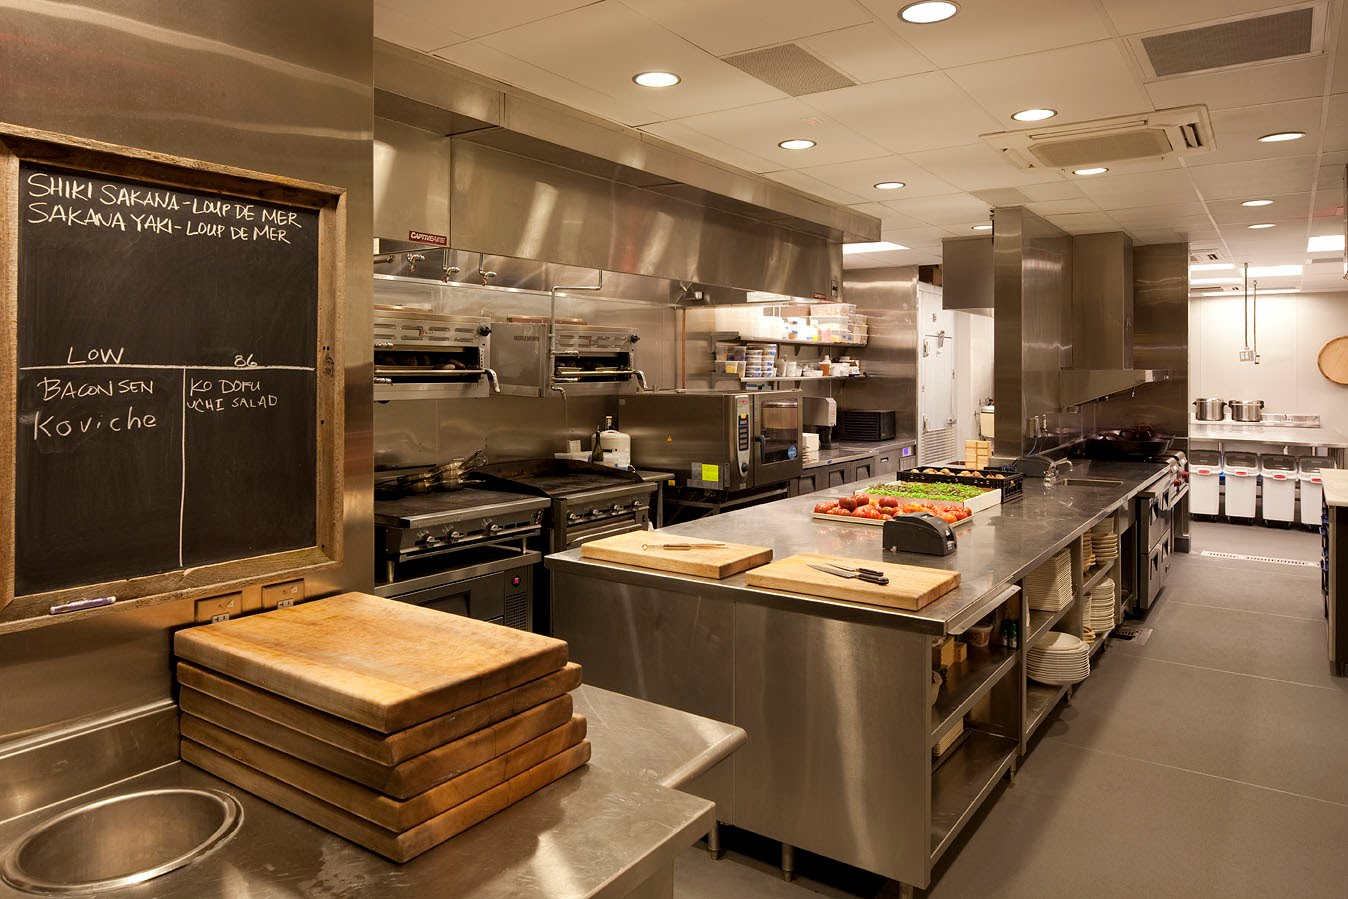 Restaurant Kitchen Guidelines perfect restaurant kitchen guidelines drawings plan 1 throughout